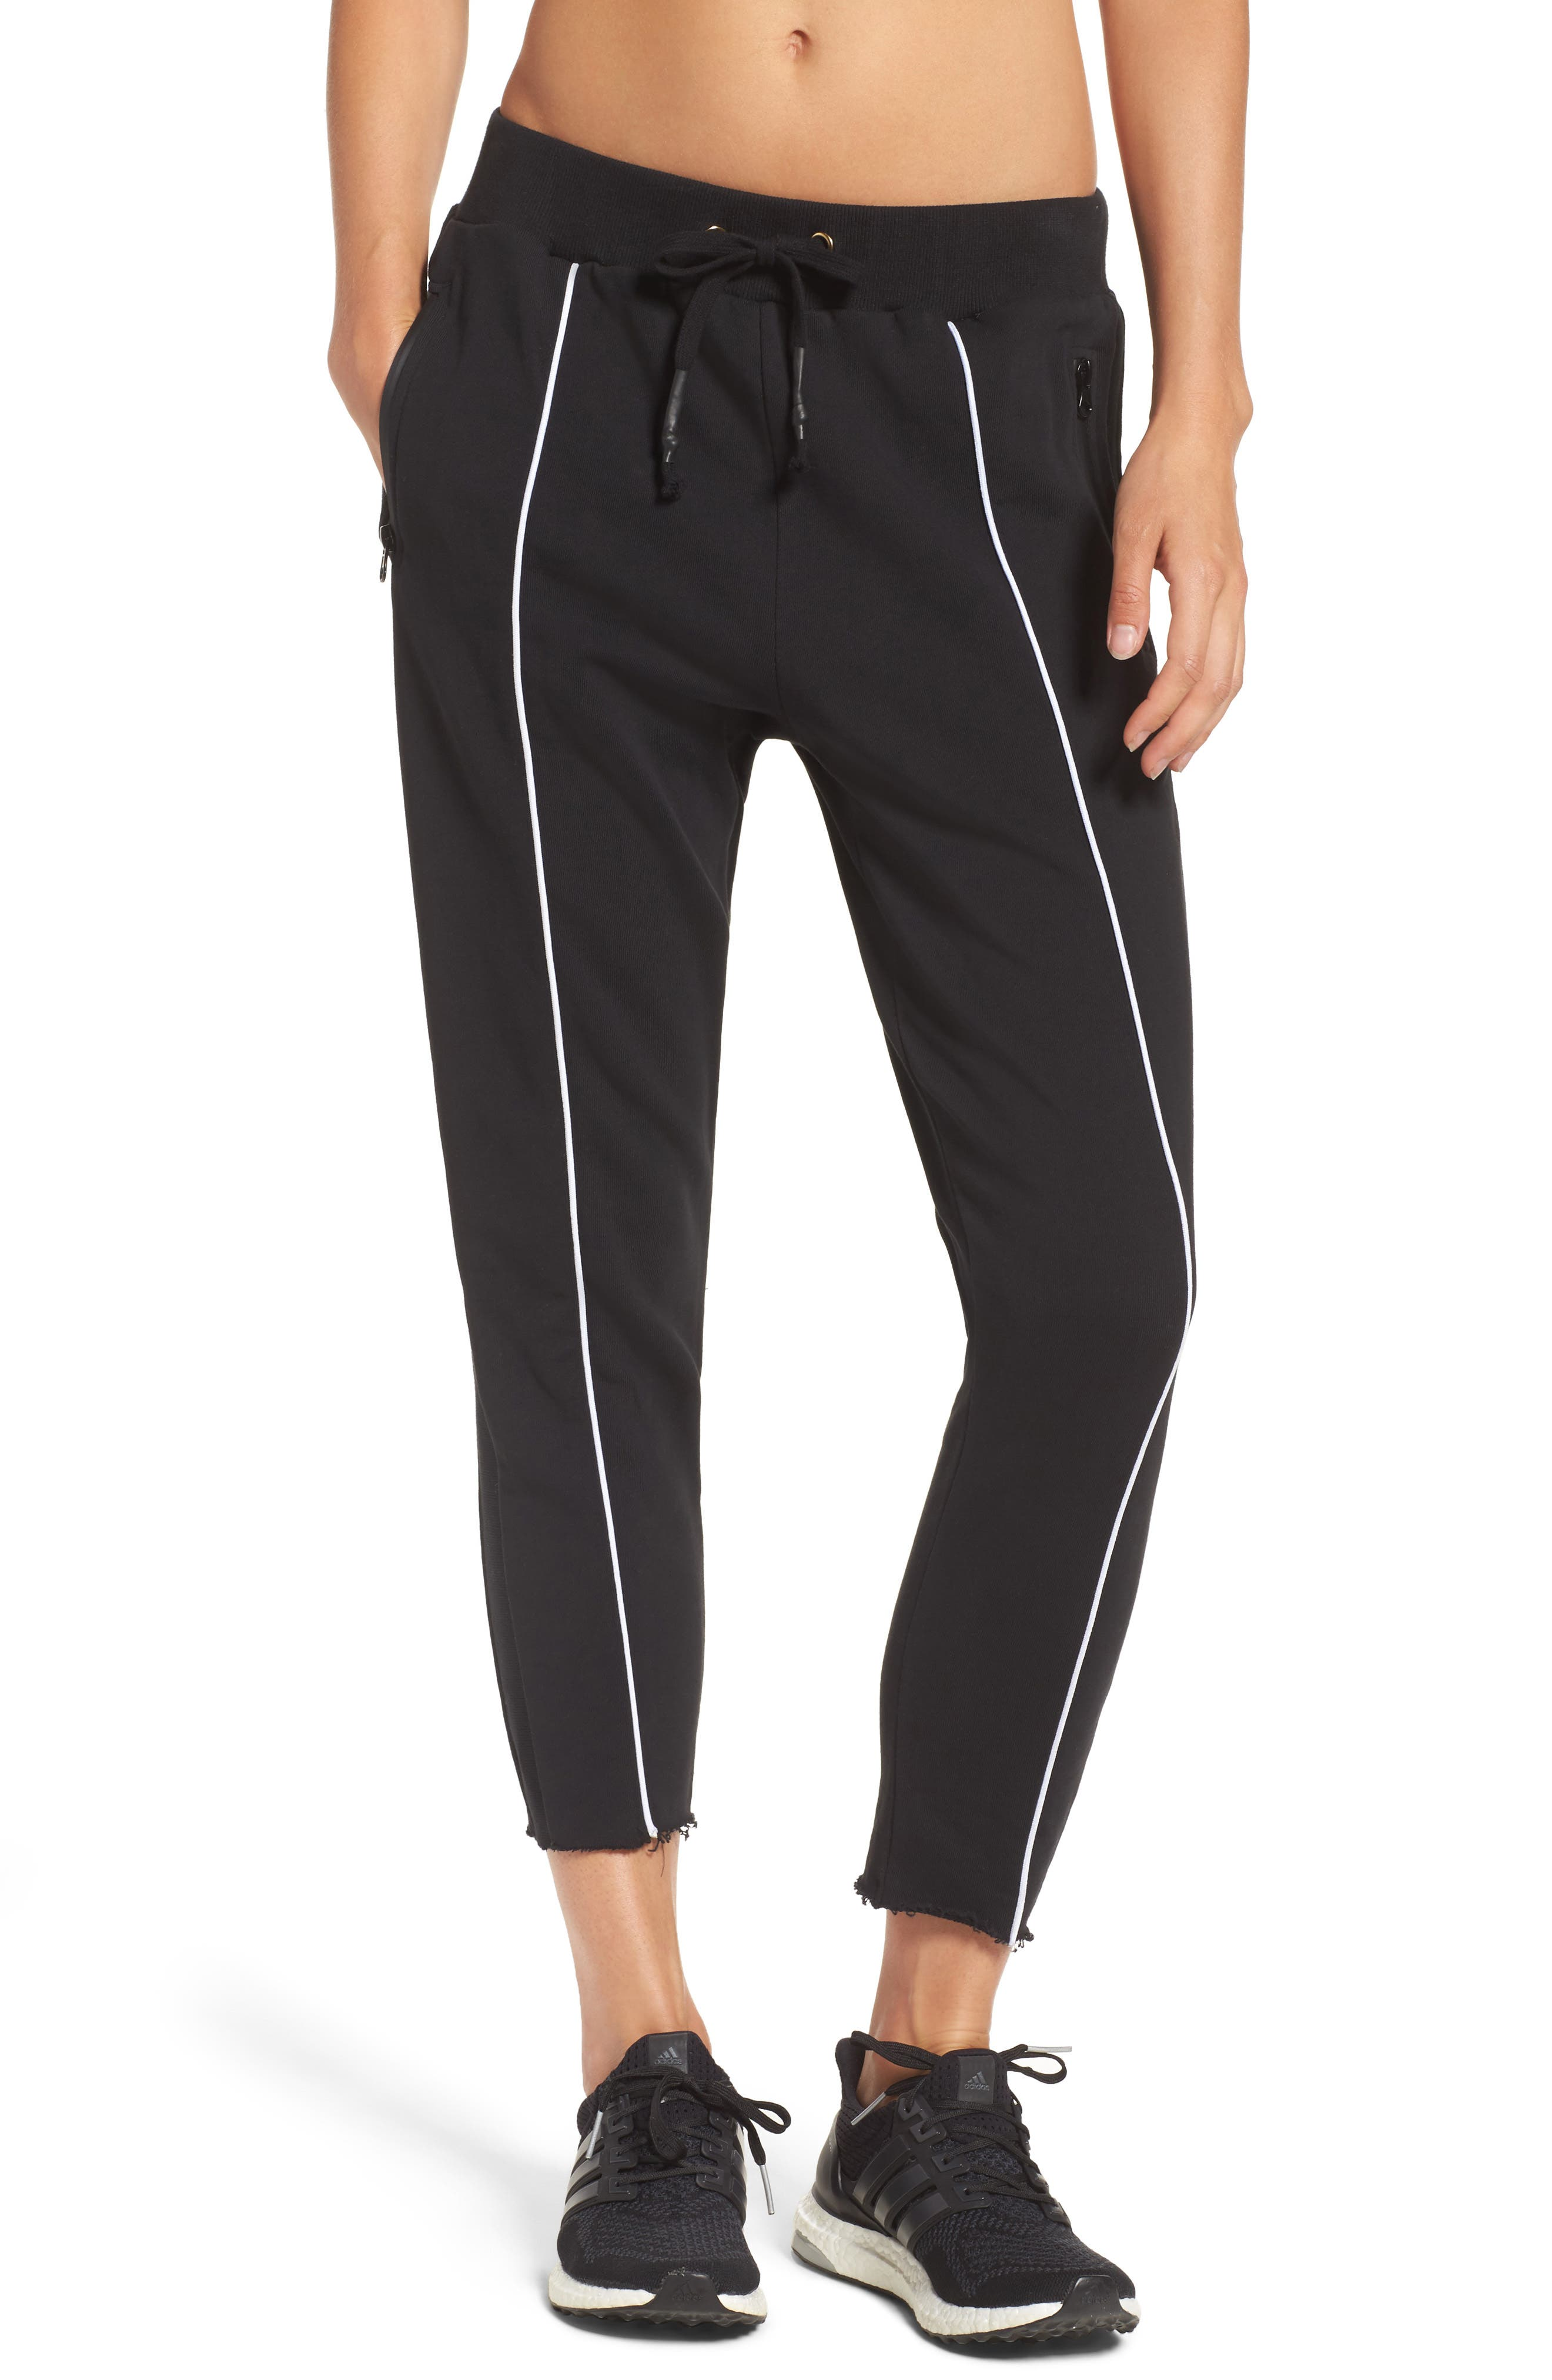 Deuce Track Pants,                             Main thumbnail 1, color,                             Black